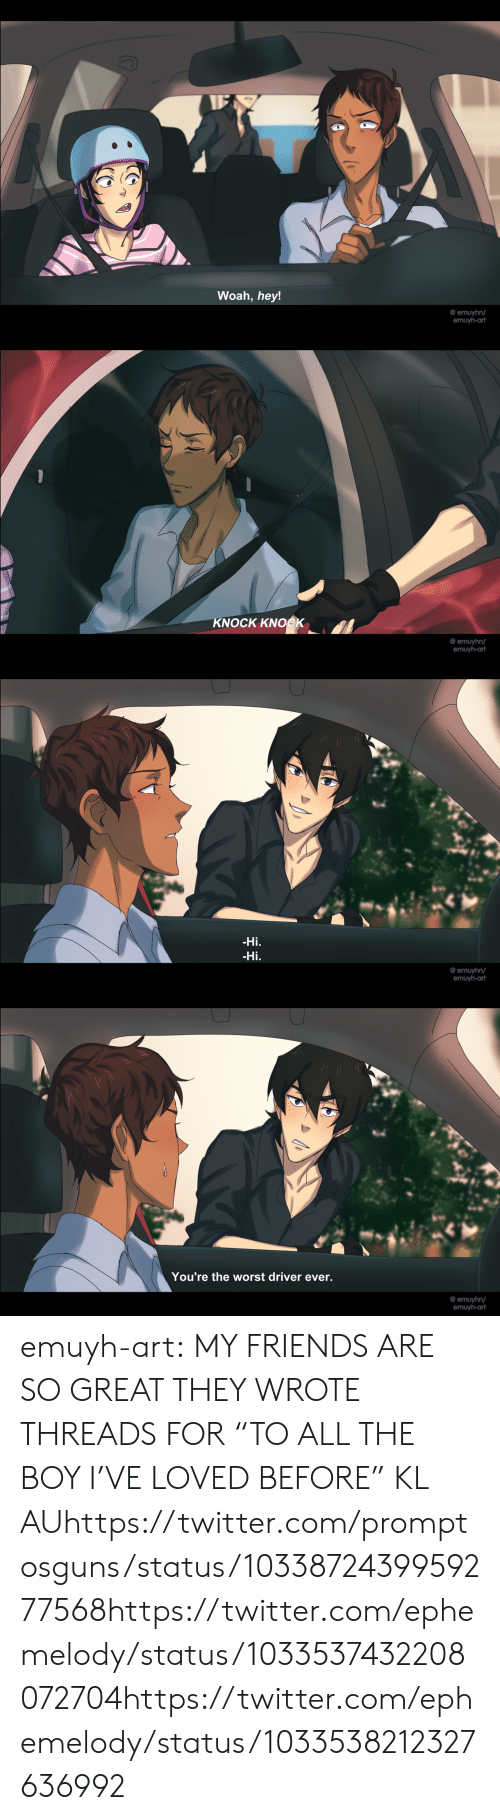 """threads: Woah, hey!  @ emuyhn/   KNOCK KNOCK  @ emuyhn/  emuyh-ar   Hi  Hi.  @ emuyhn/   You're the worst driver ever.  @ emuyhn/ emuyh-art:  MY FRIENDS ARE SO GREAT THEY WROTE THREADS FOR """"TO ALL THE BOY I'VE LOVED BEFORE"""" KL AUhttps://twitter.com/promptosguns/status/1033872439959277568https://twitter.com/ephemelody/status/1033537432208072704https://twitter.com/ephemelody/status/1033538212327636992"""